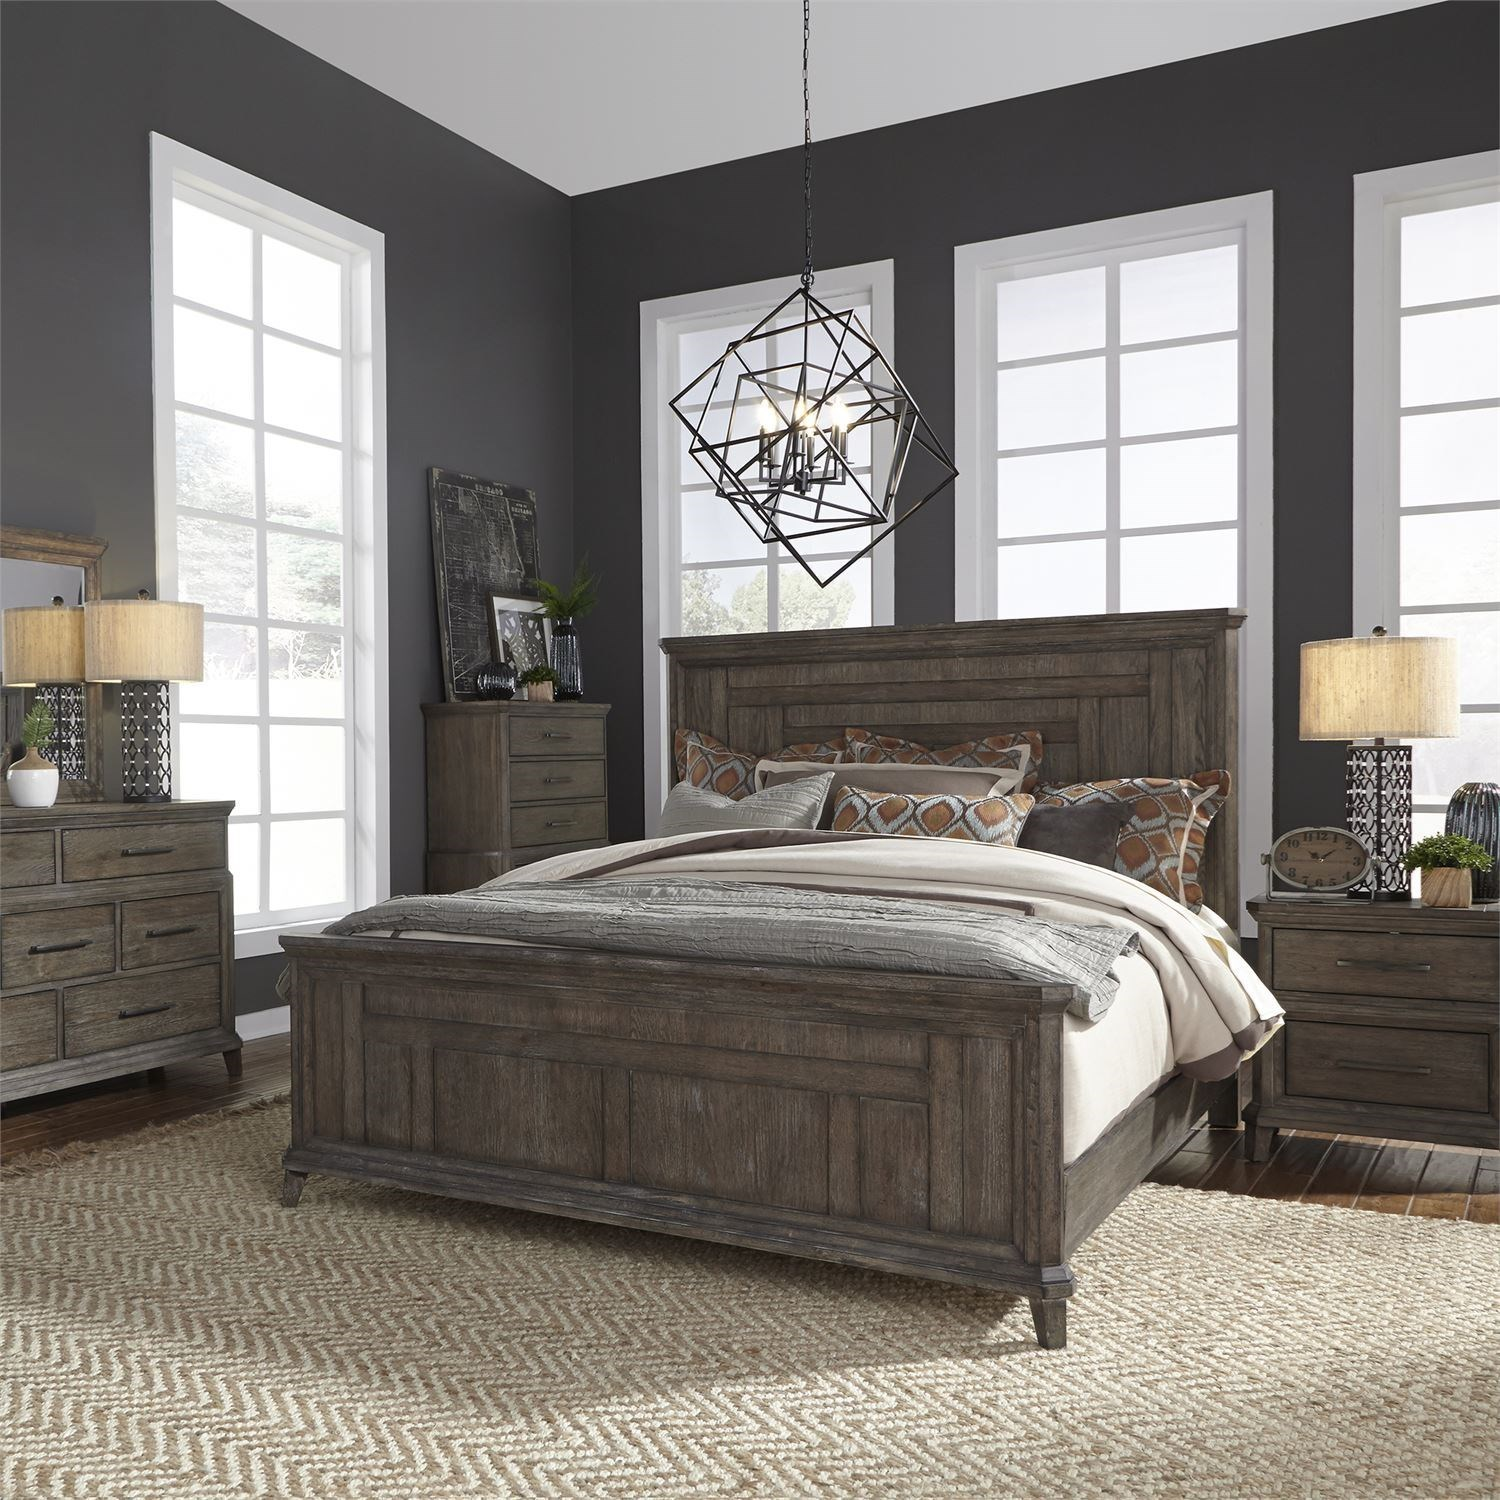 Artisan Prairie Queen Bedroom Group by Liberty Furniture at Zak's Home